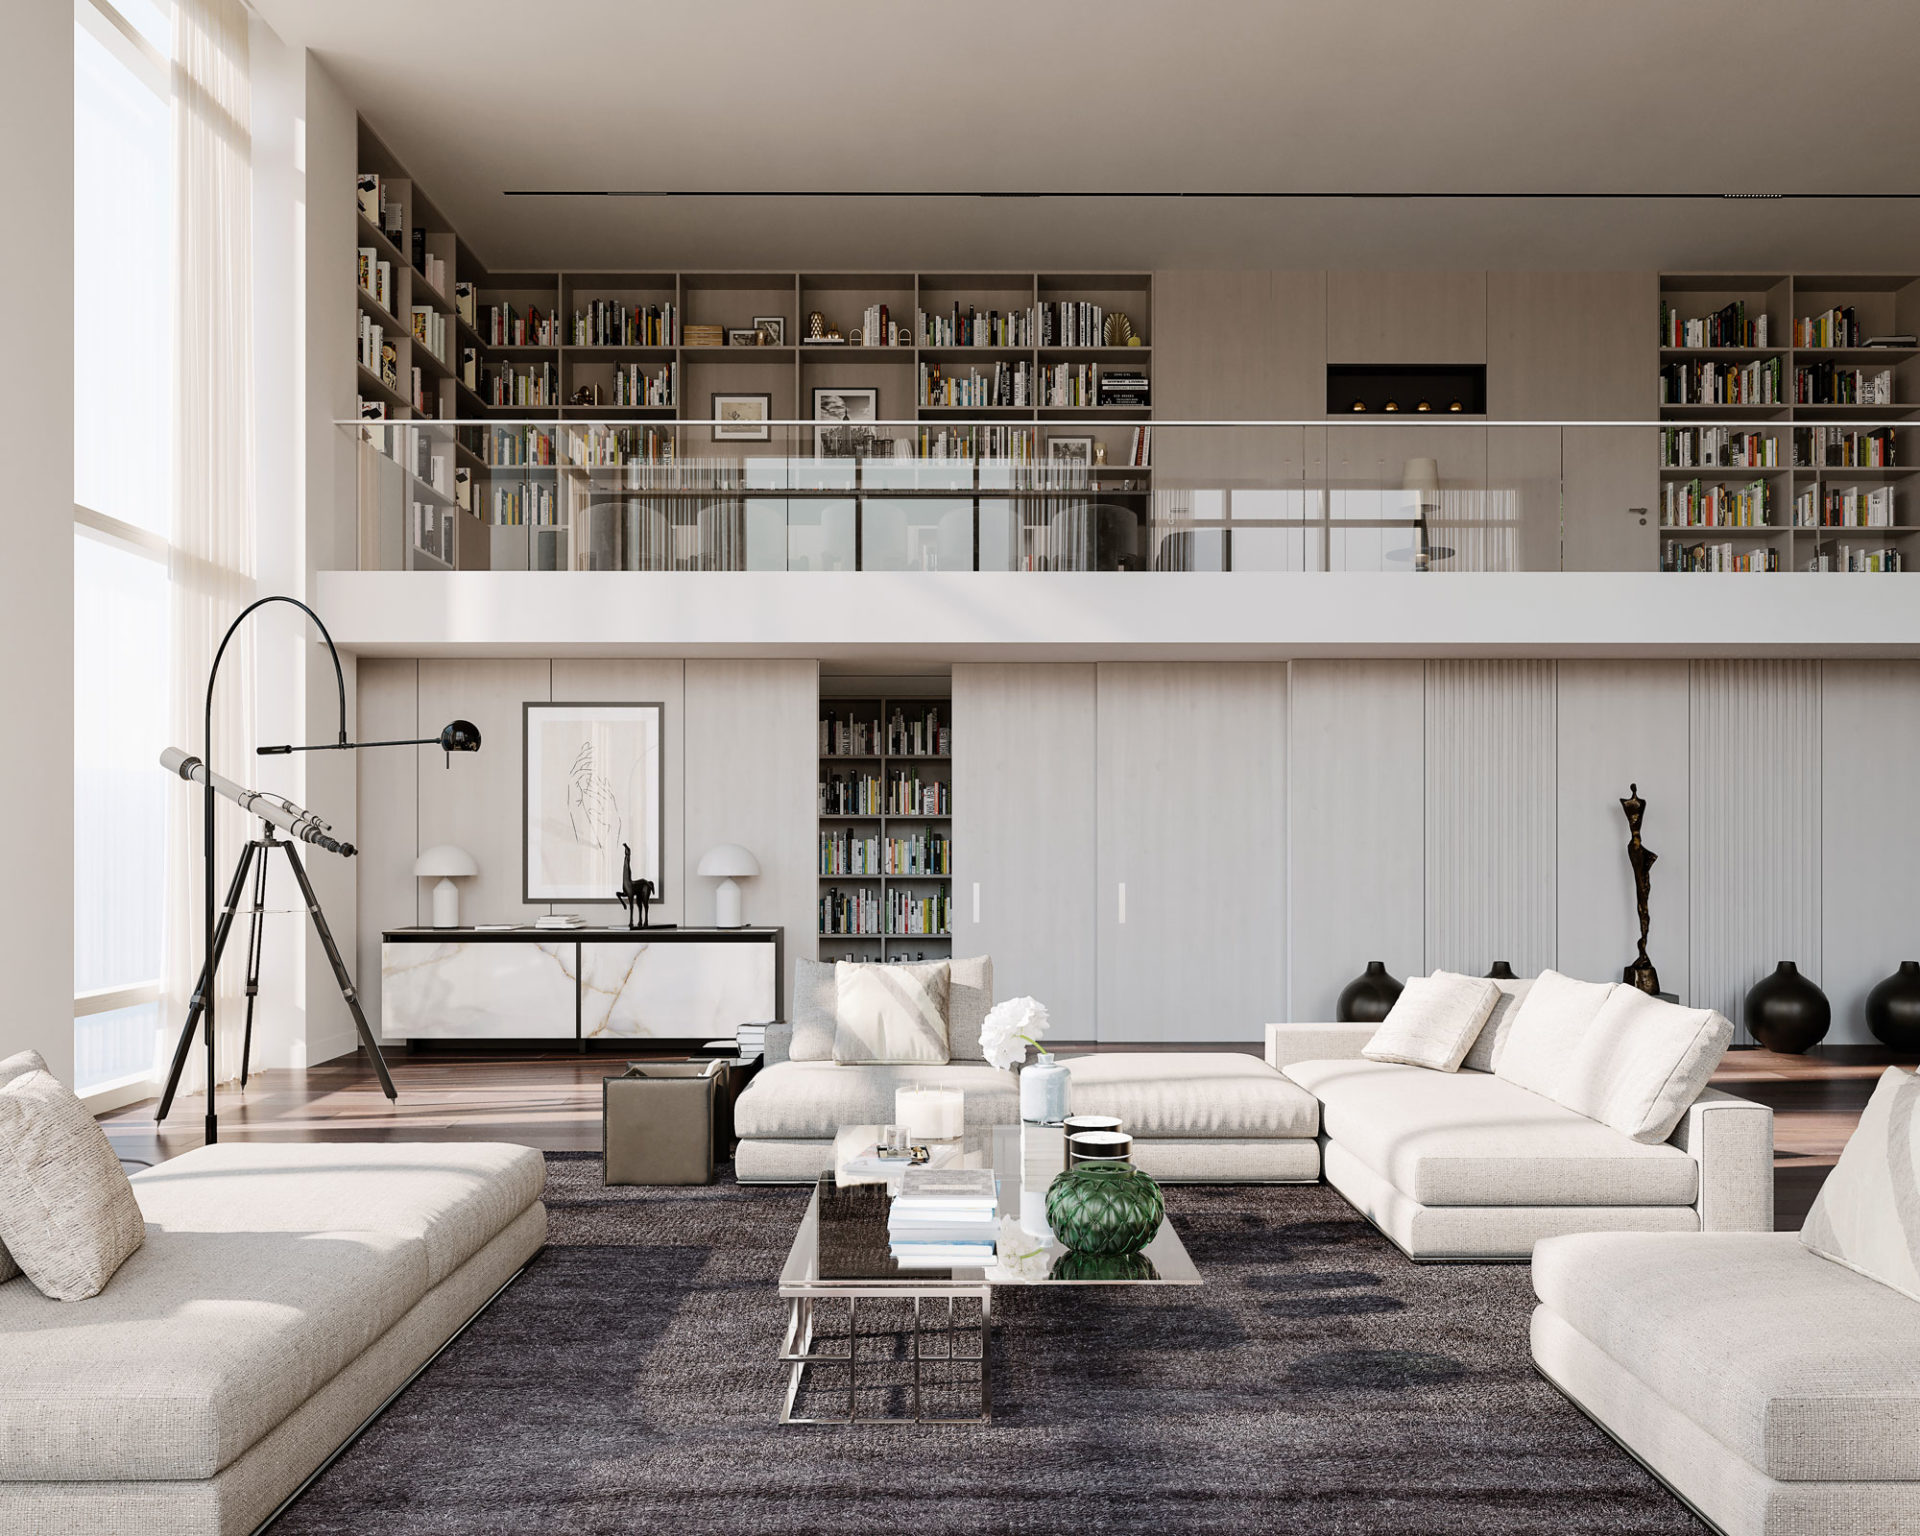 Penthouse by ZUH Visuals - Living room